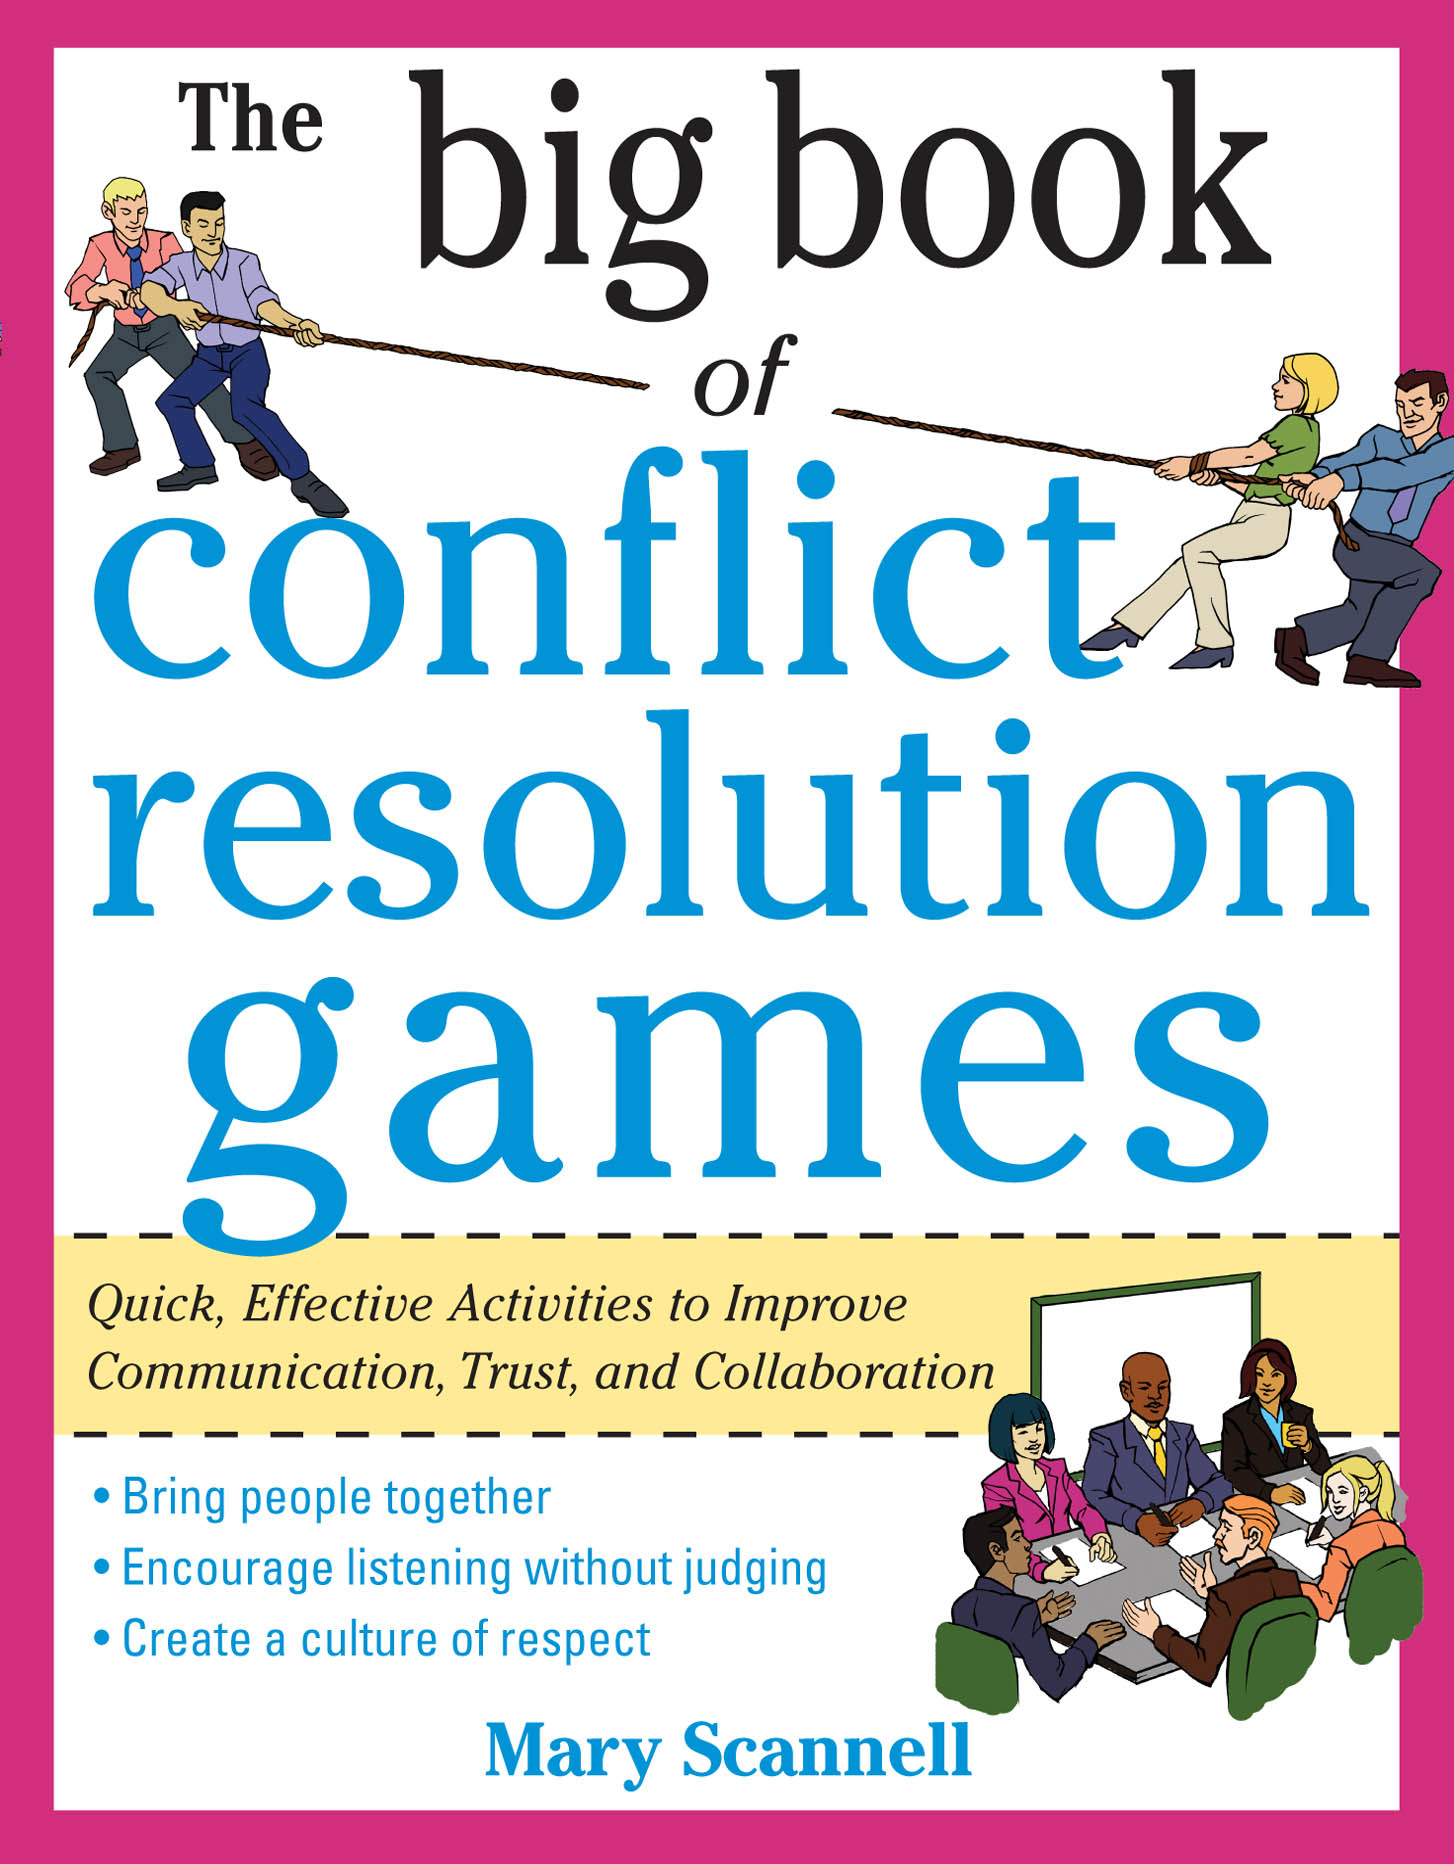 Download Ebook The Big Book of Conflict Resolution Games: Quick, Effective Activities to Improve Communication, Trust and Collaboration by Mary Scannell Pdf